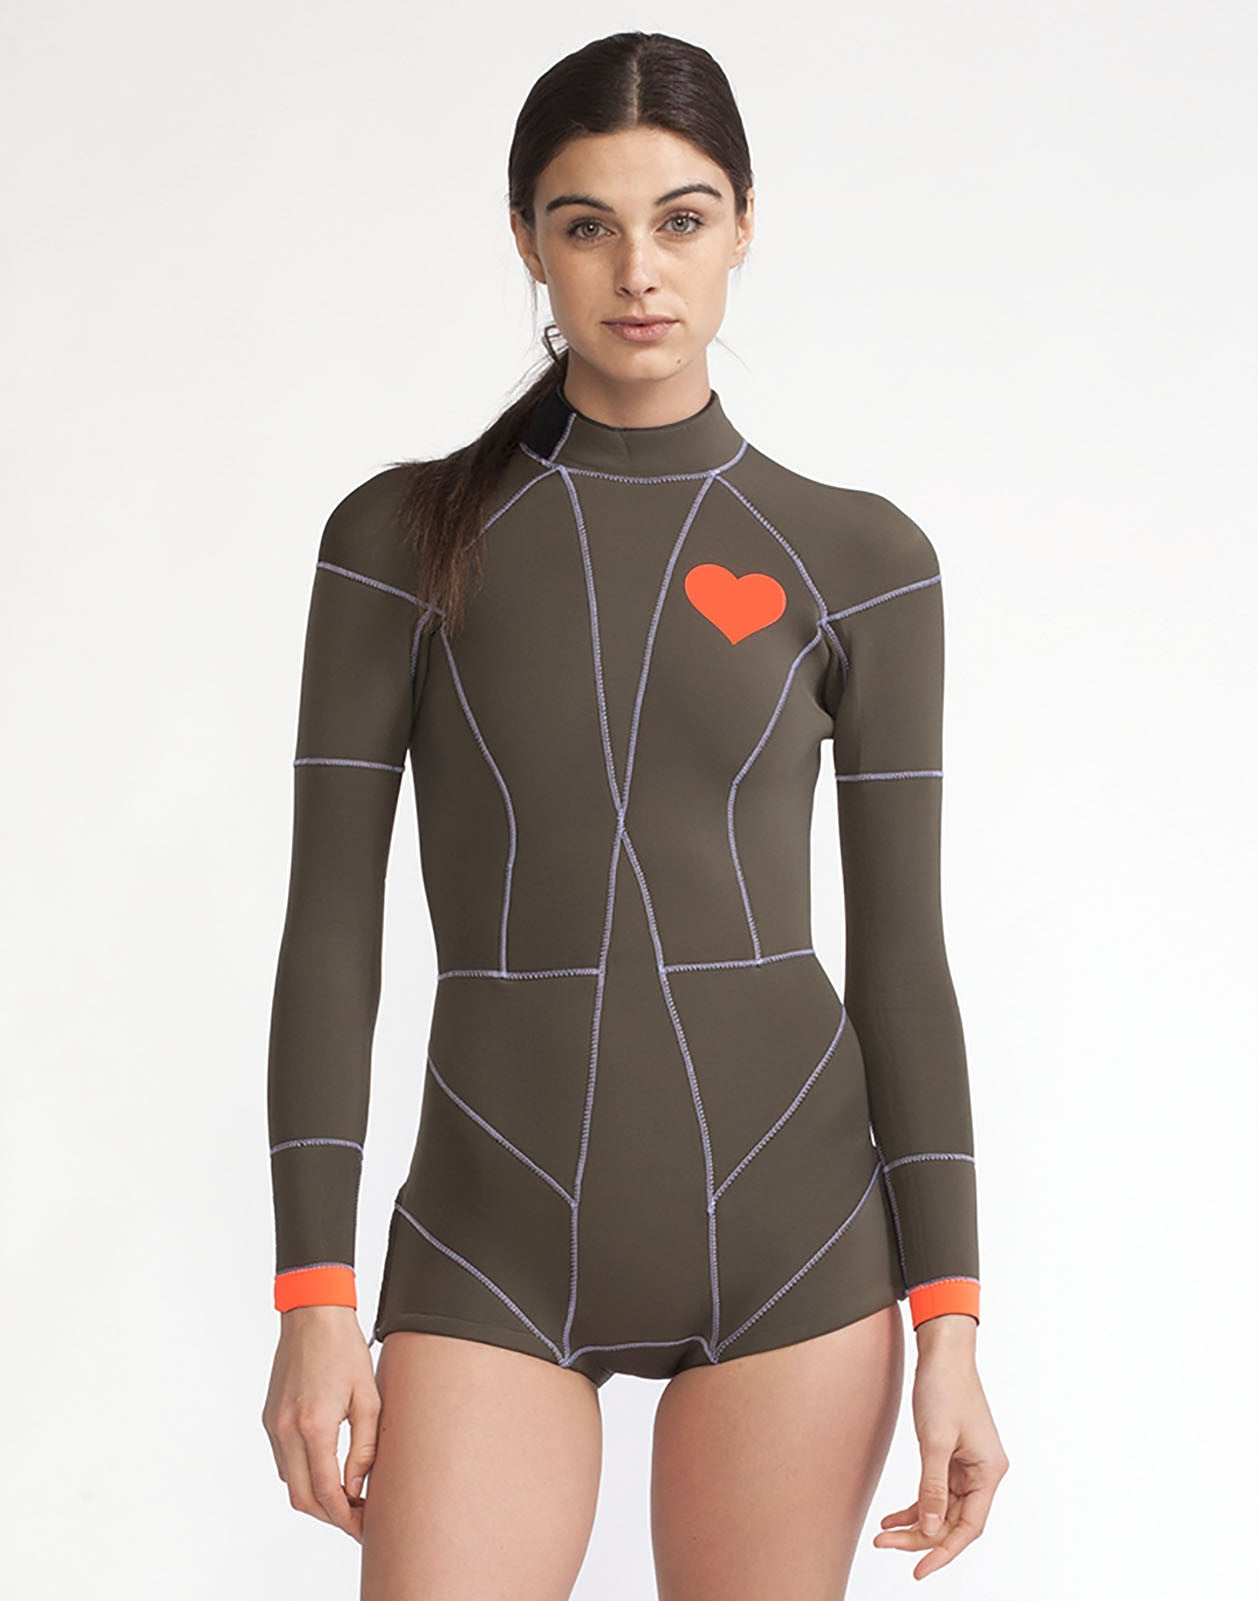 Front view of the 2MM Fiber-Lite neoprene wetsuit with heart emblem detail on chest